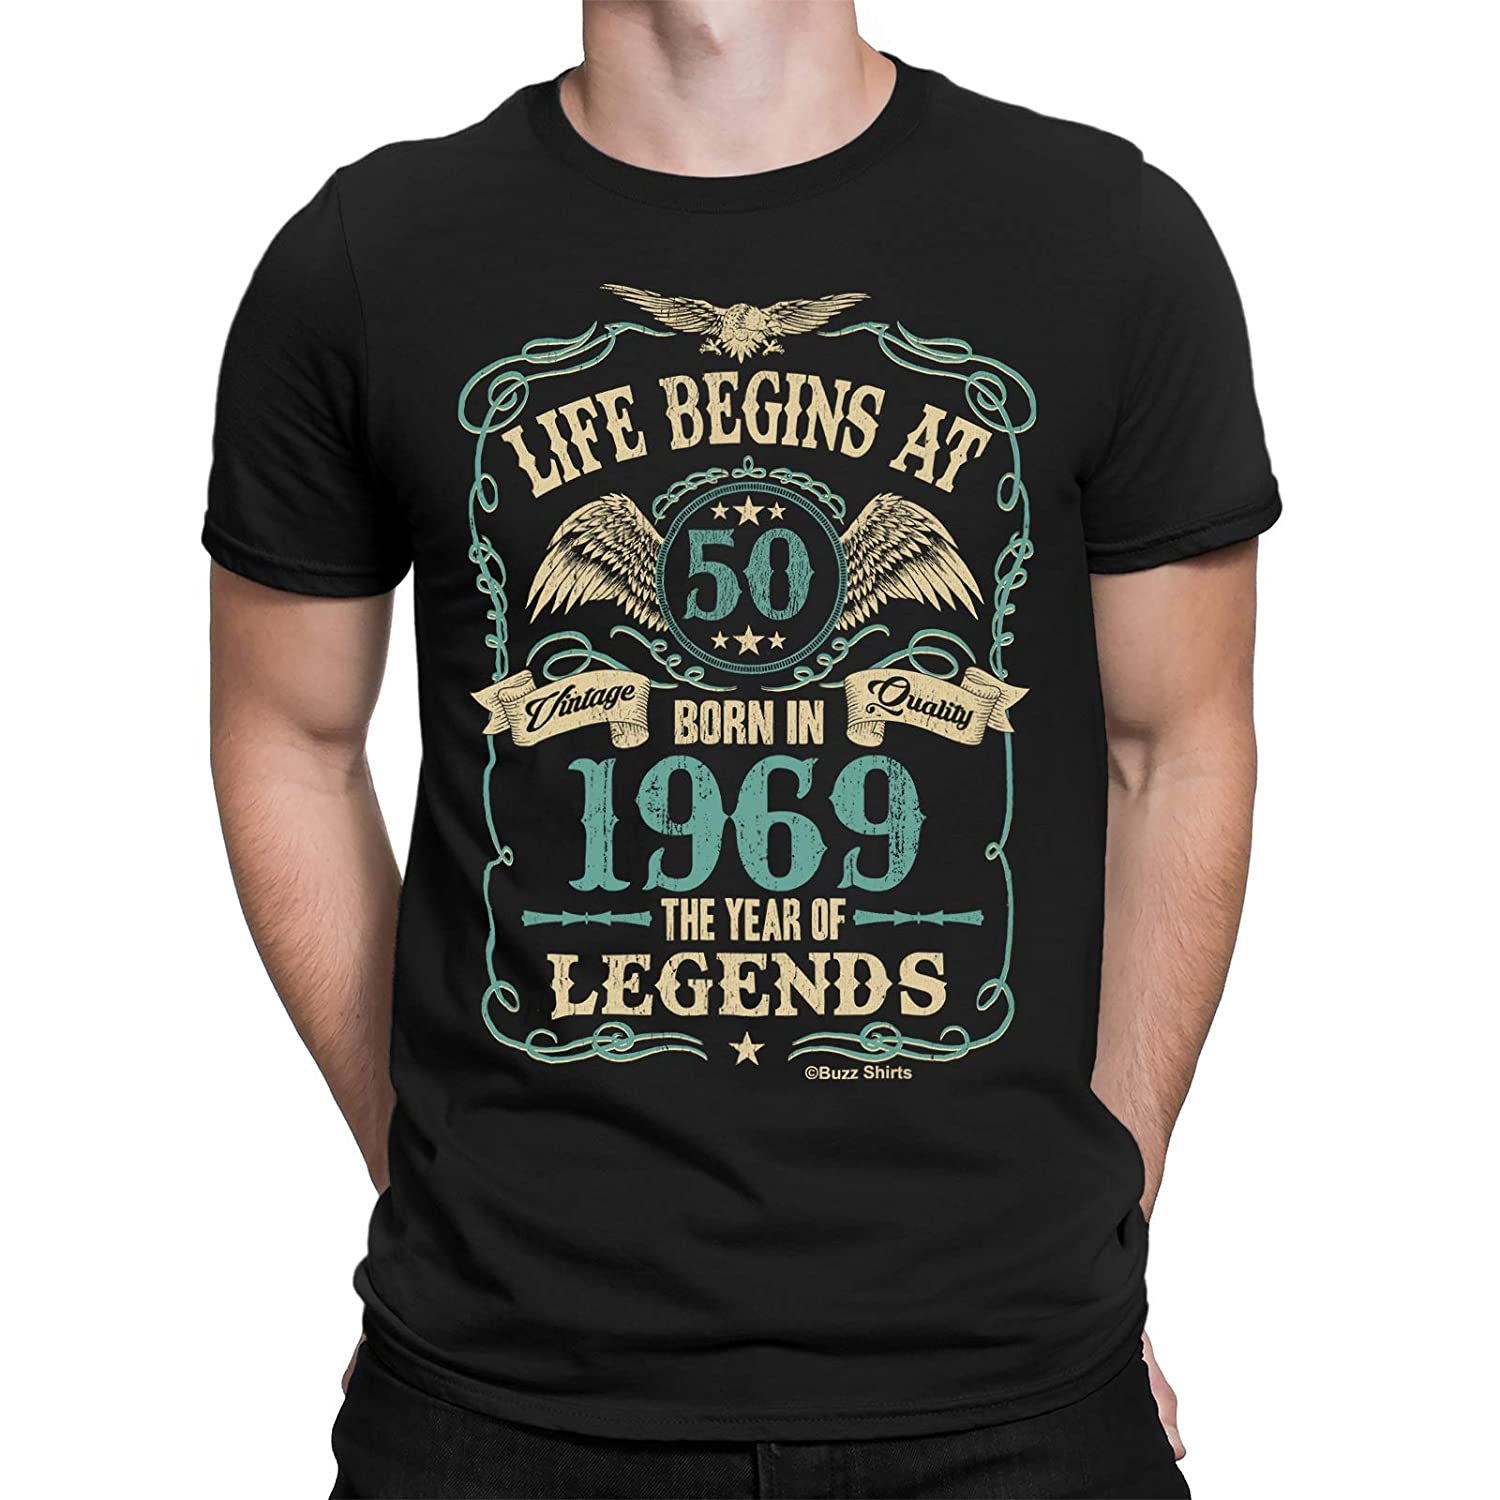 ac1a43103 Buzz Shirts Life Begins at 50 Mens T-Shirt - Born in 1969 Year of Legends 50th  Birthday Gift: Amazon.ca: Clothing & Accessories